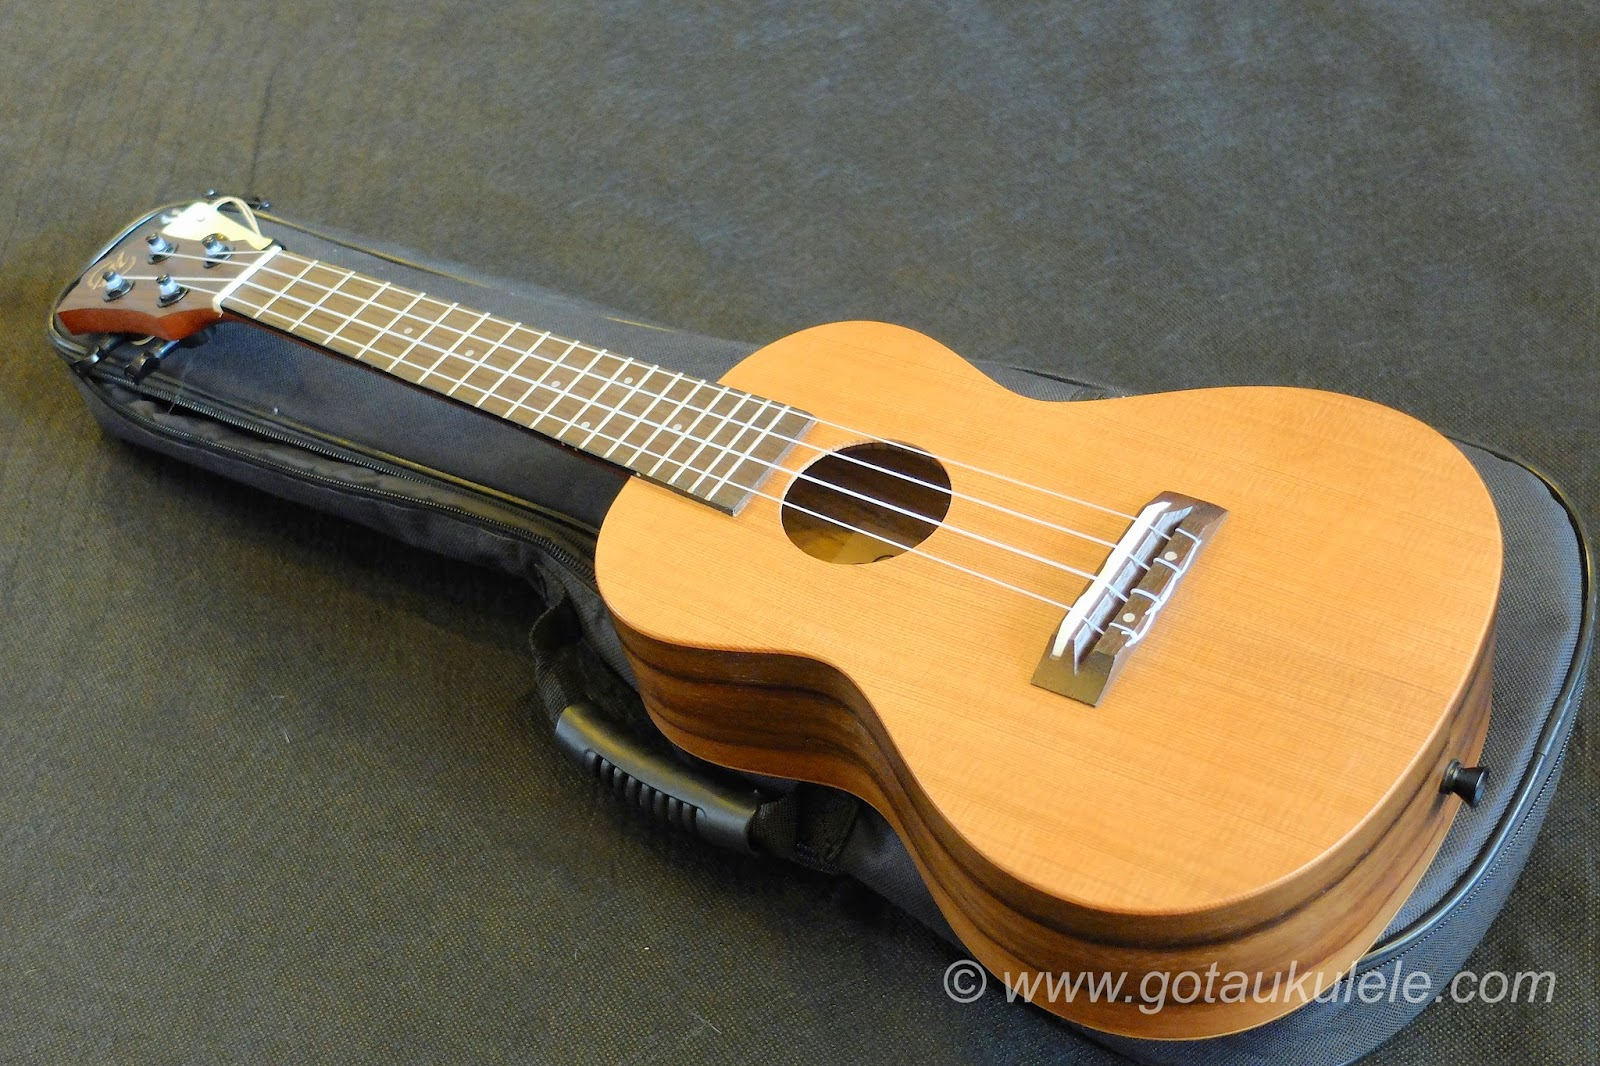 CloudMusic HM12 Ukulele